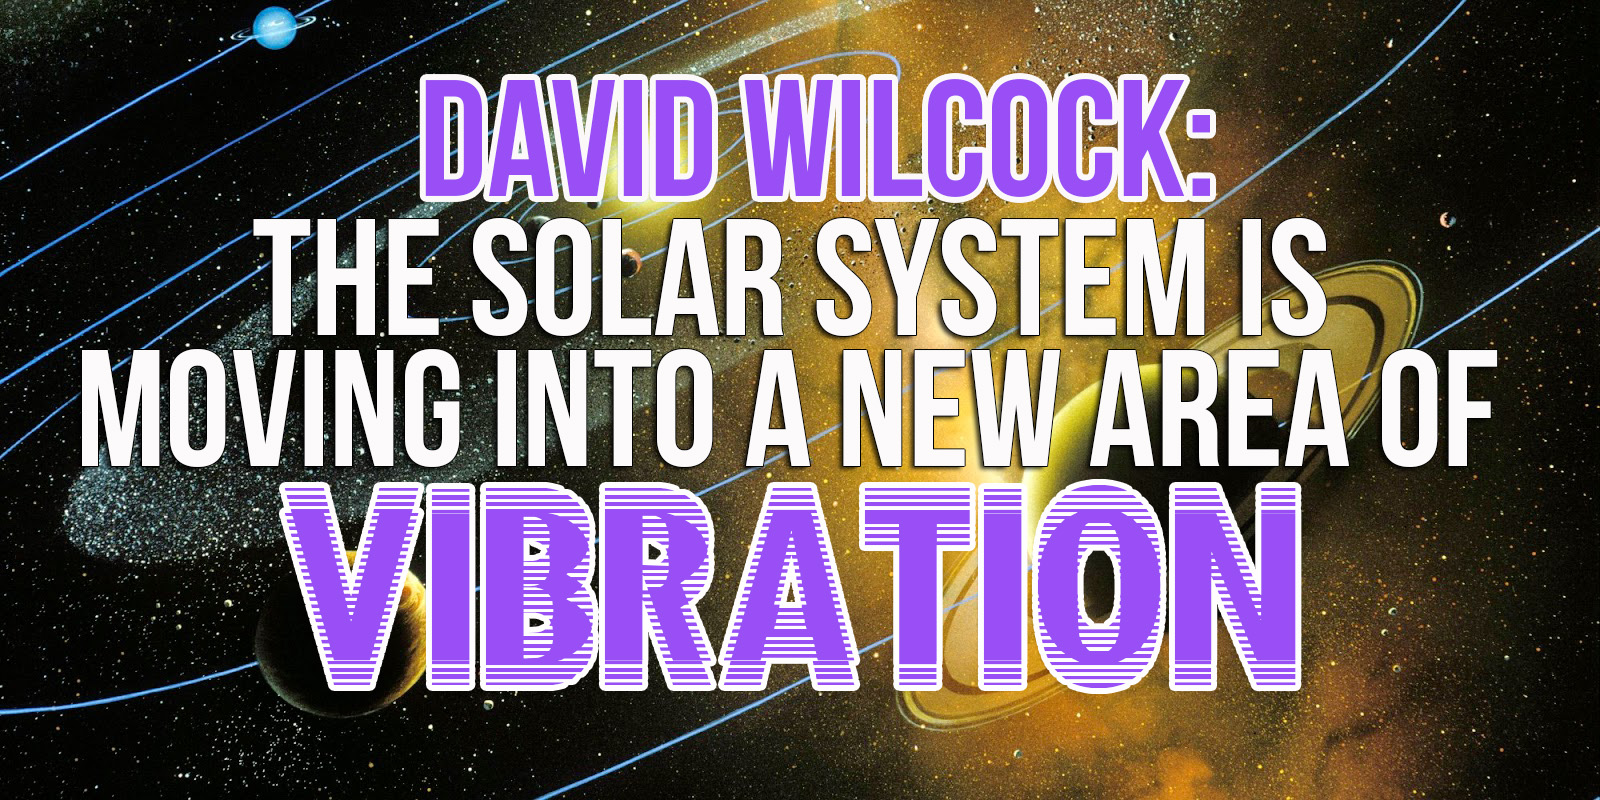 David Wilcock - The Solar System Is Moving Into A New Area Of Vibration